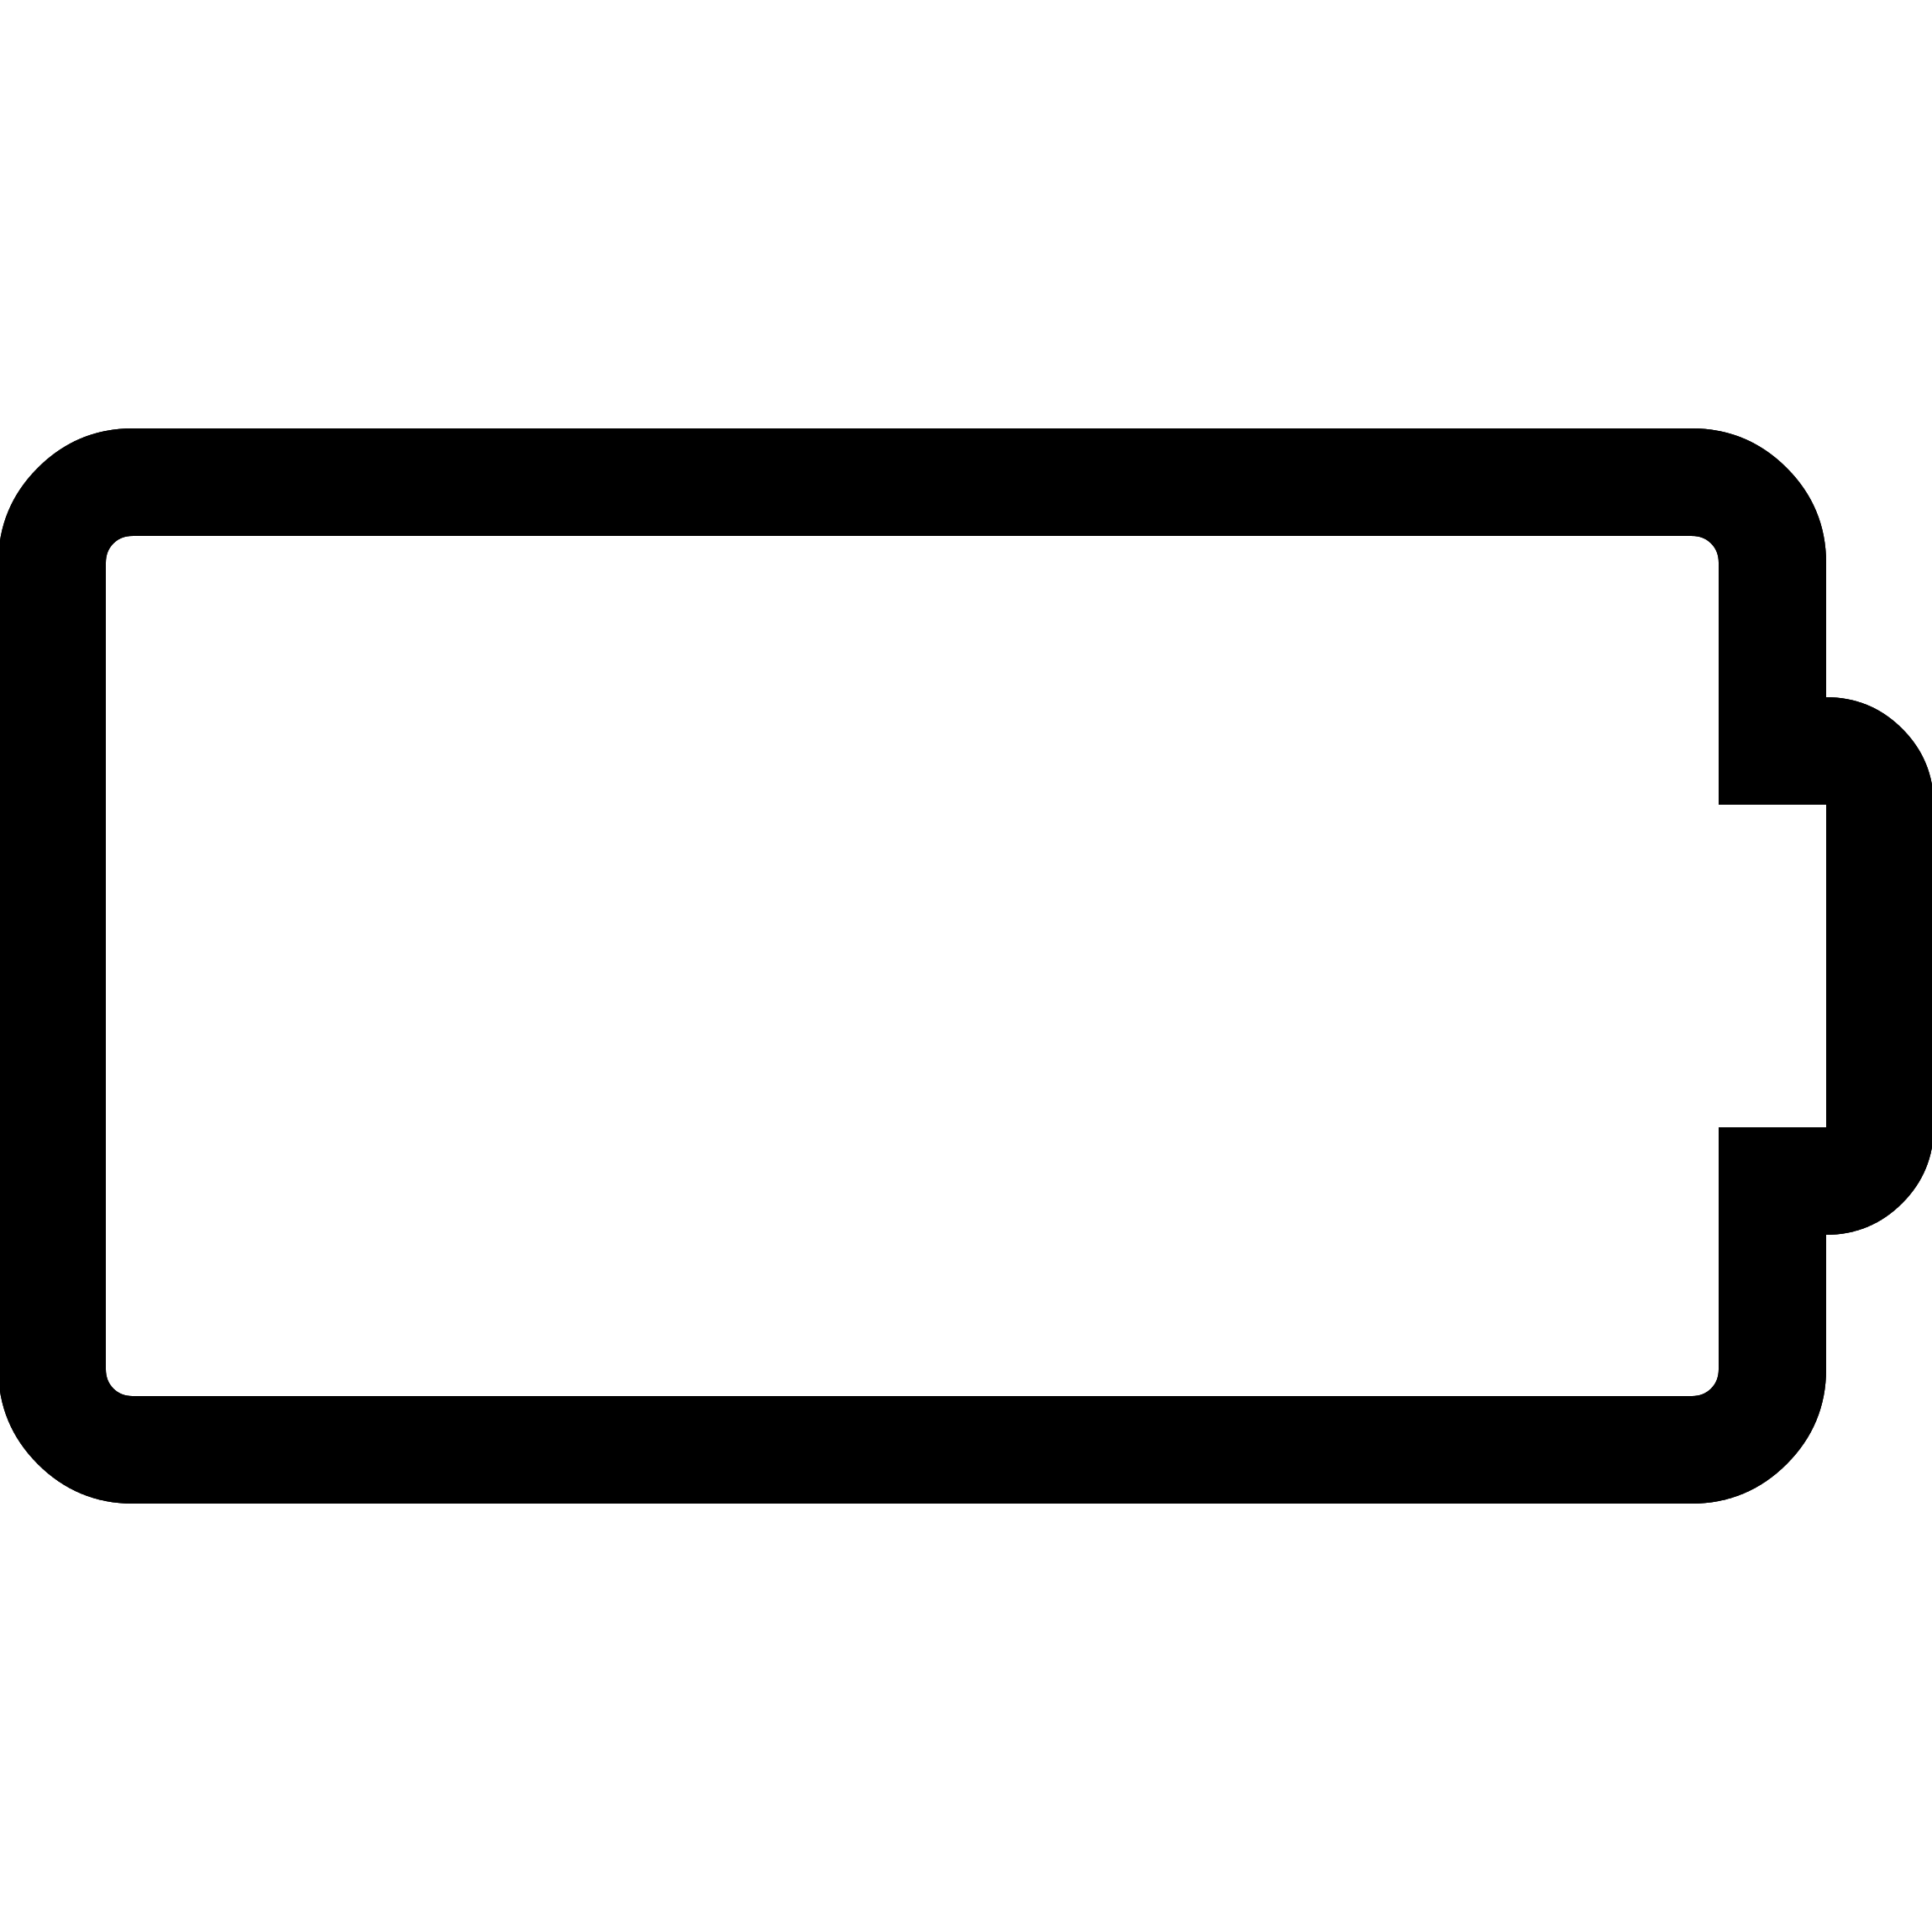 data/images/battery-empty.png